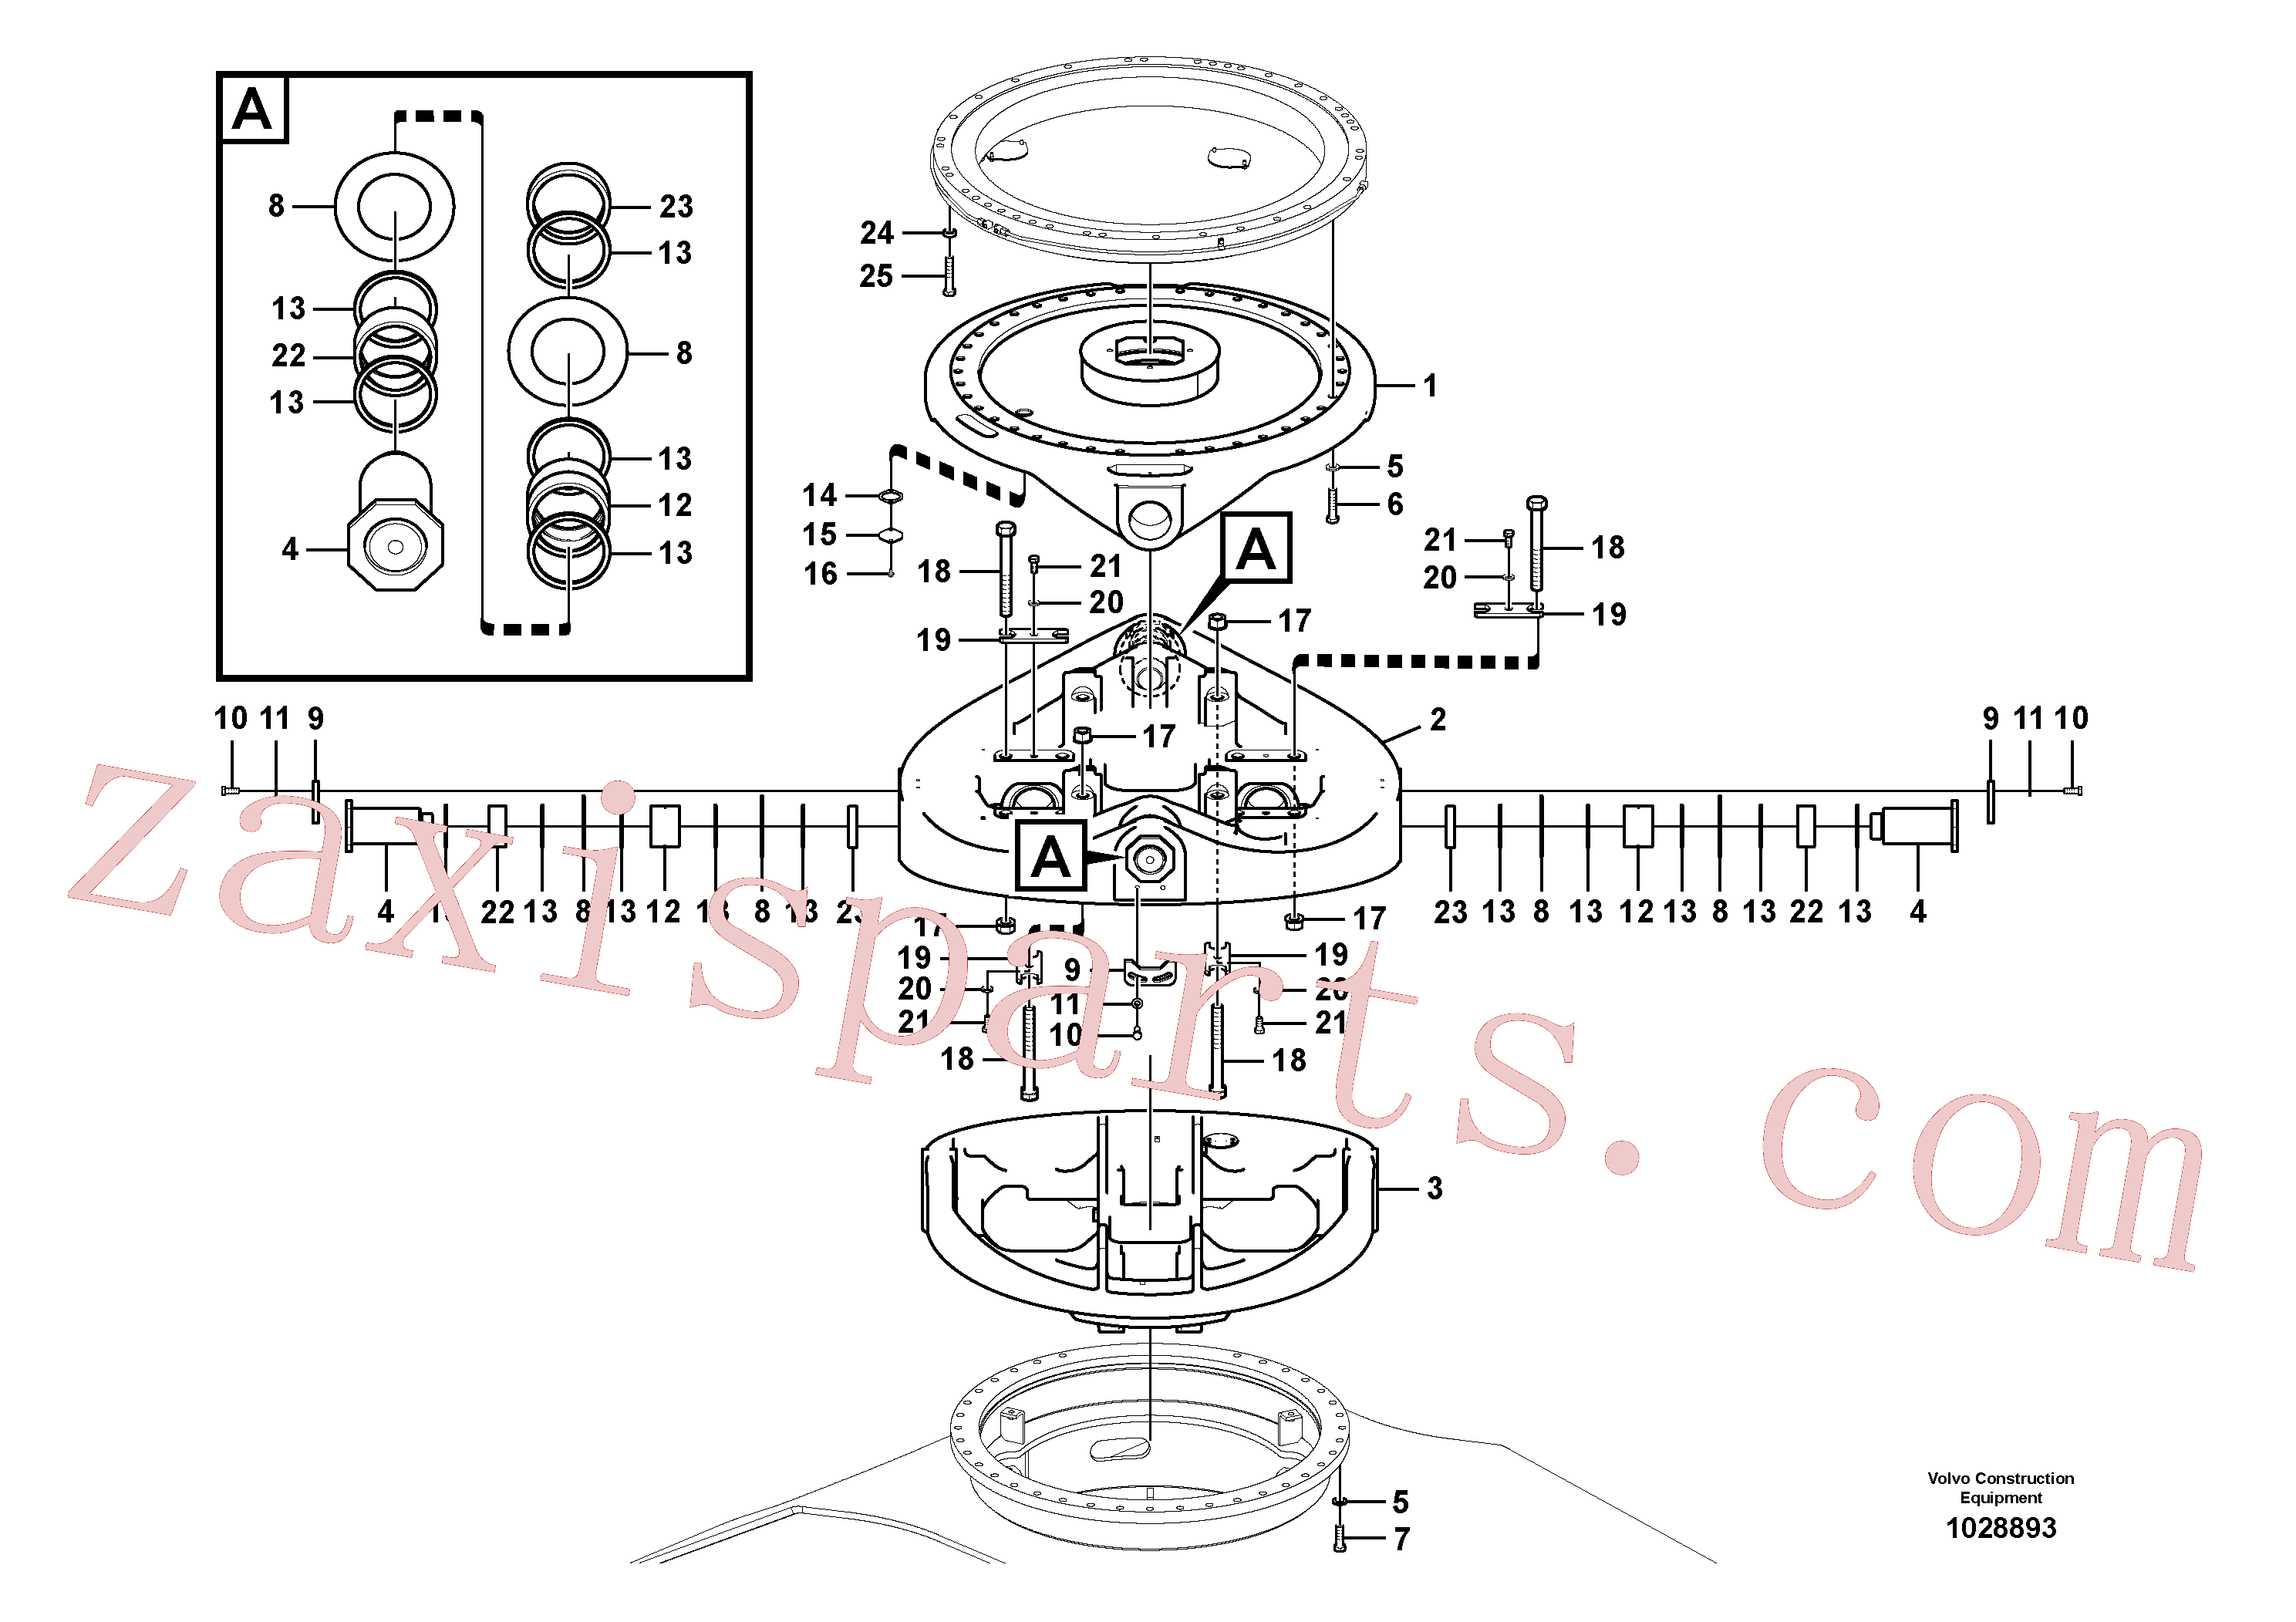 SA9011-22421 for Volvo Level system structure(1028893 assembly)